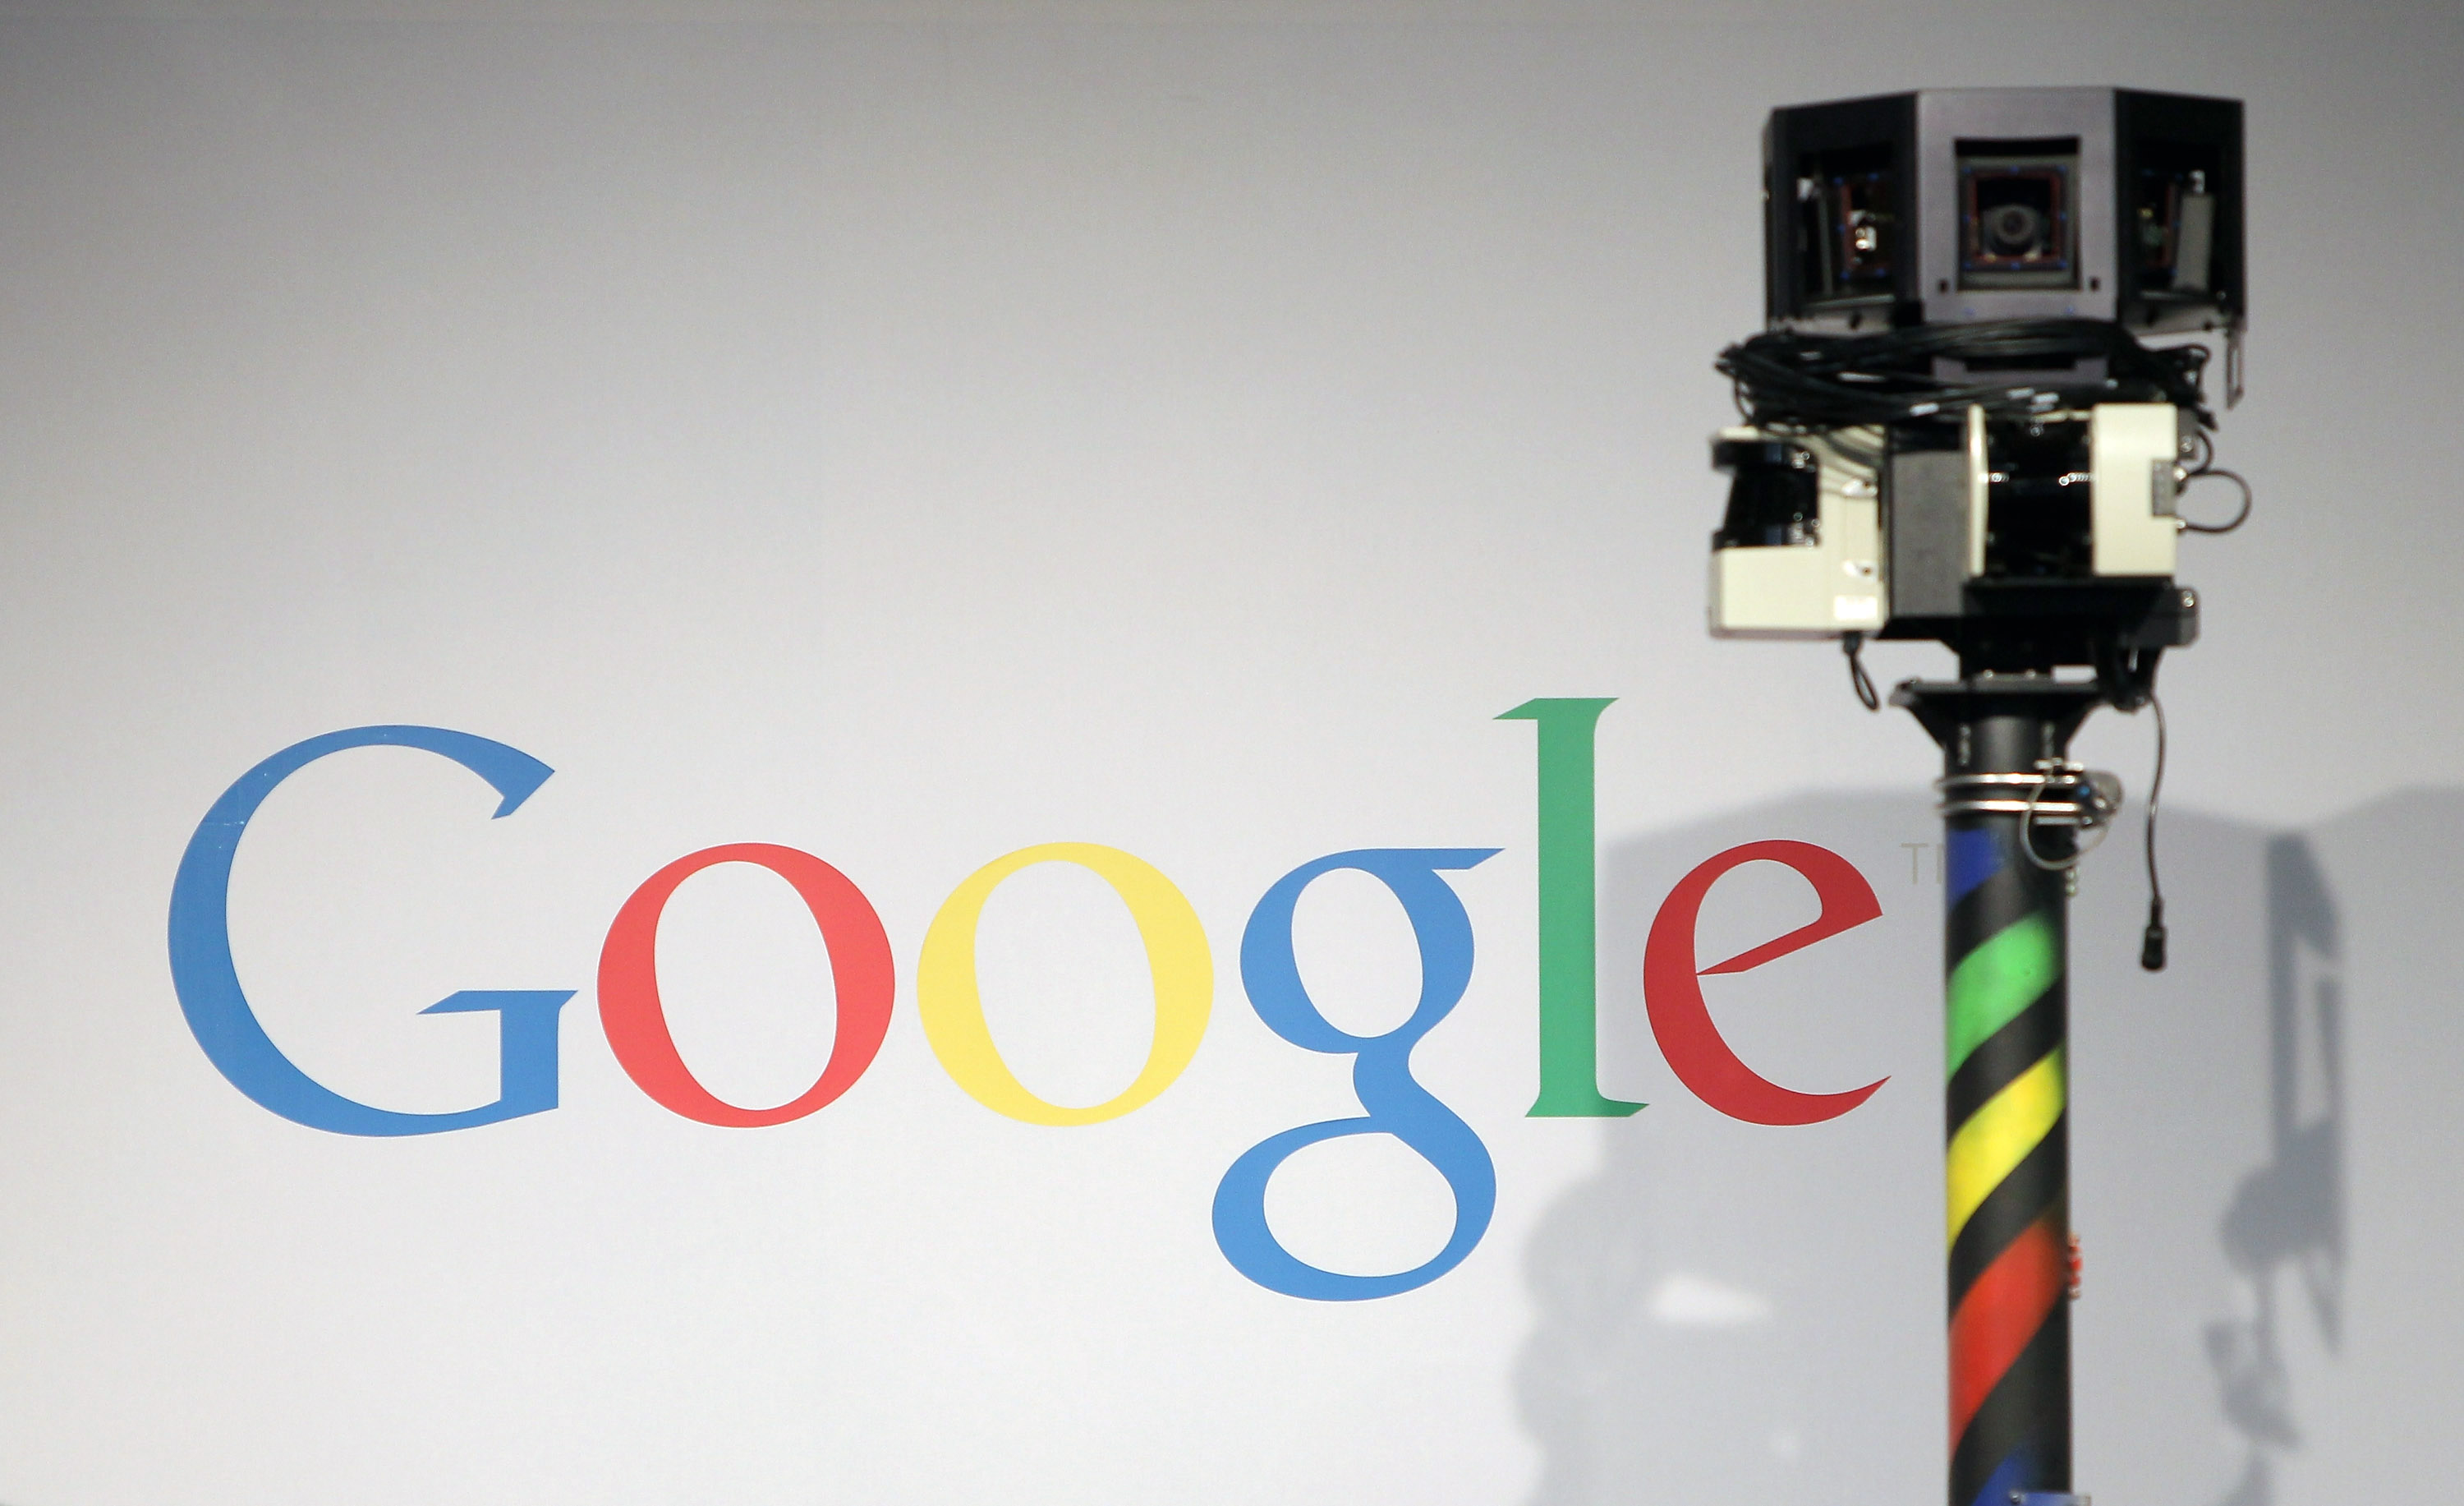 Android Creator Andy Rubin's Next Big Google Project: Robots